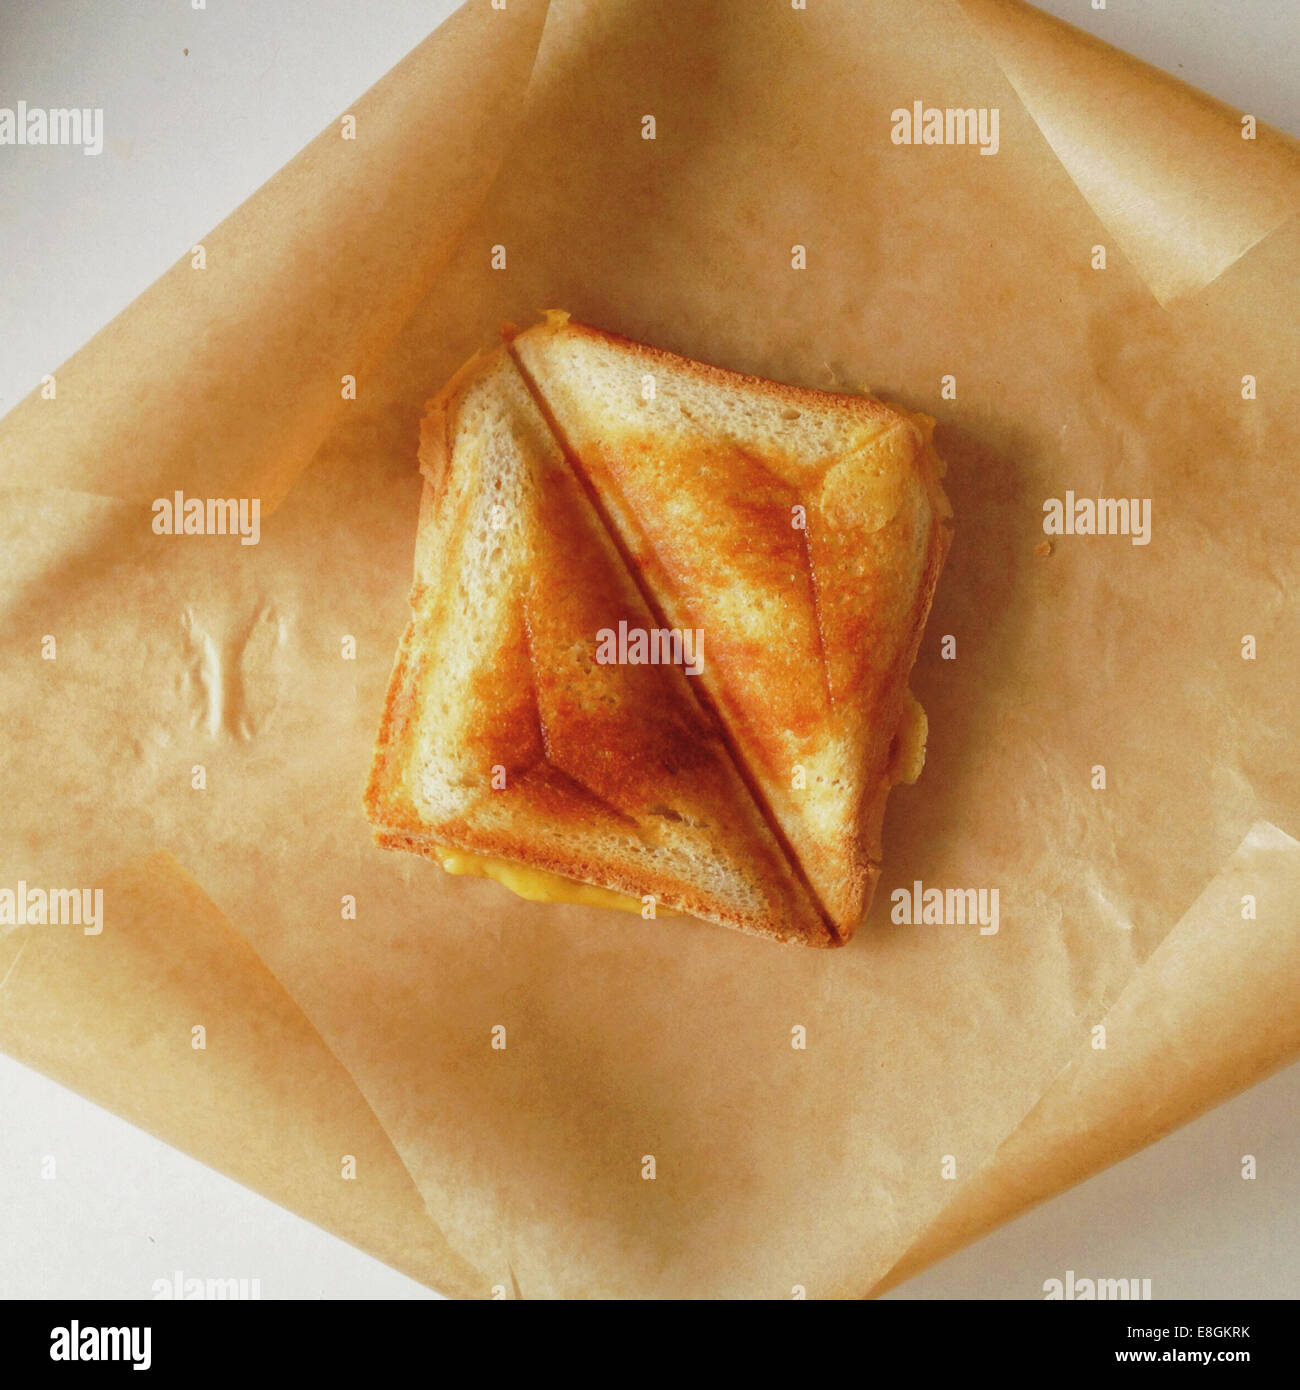 Homemade toasted cheese sandwich - Stock Image